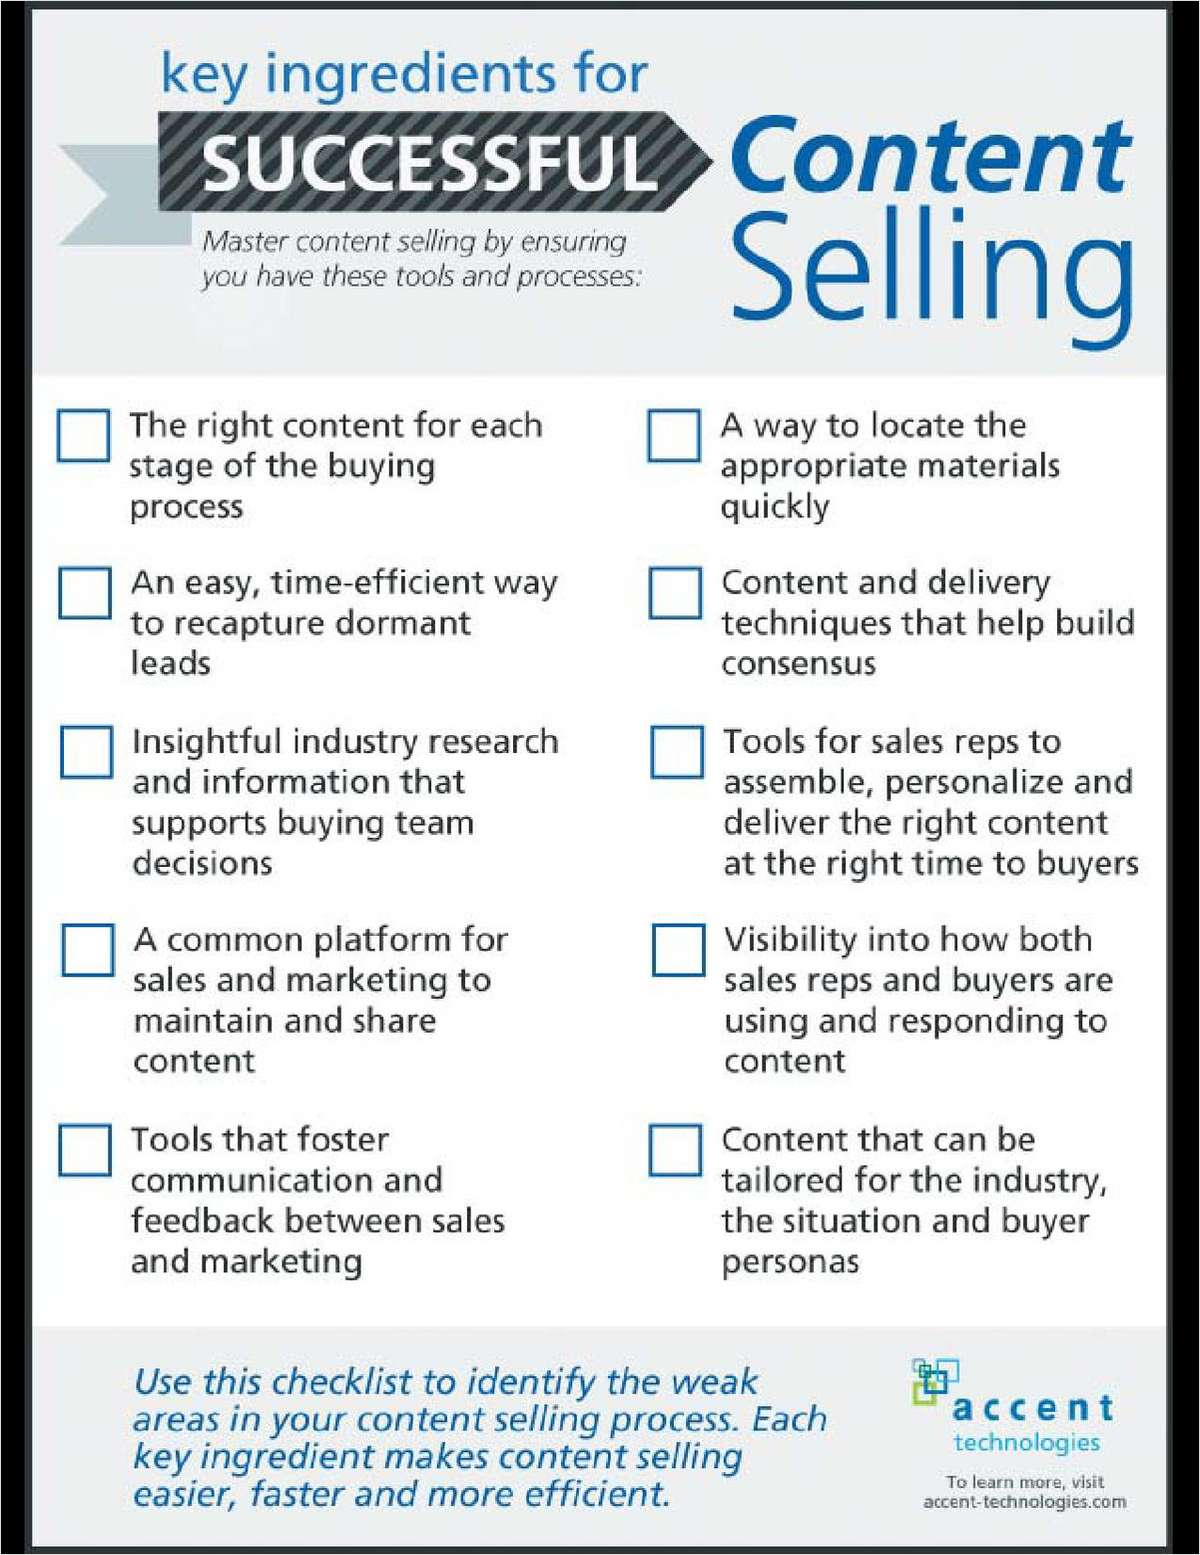 Checklist: Key Ingredients for Successful Content Selling